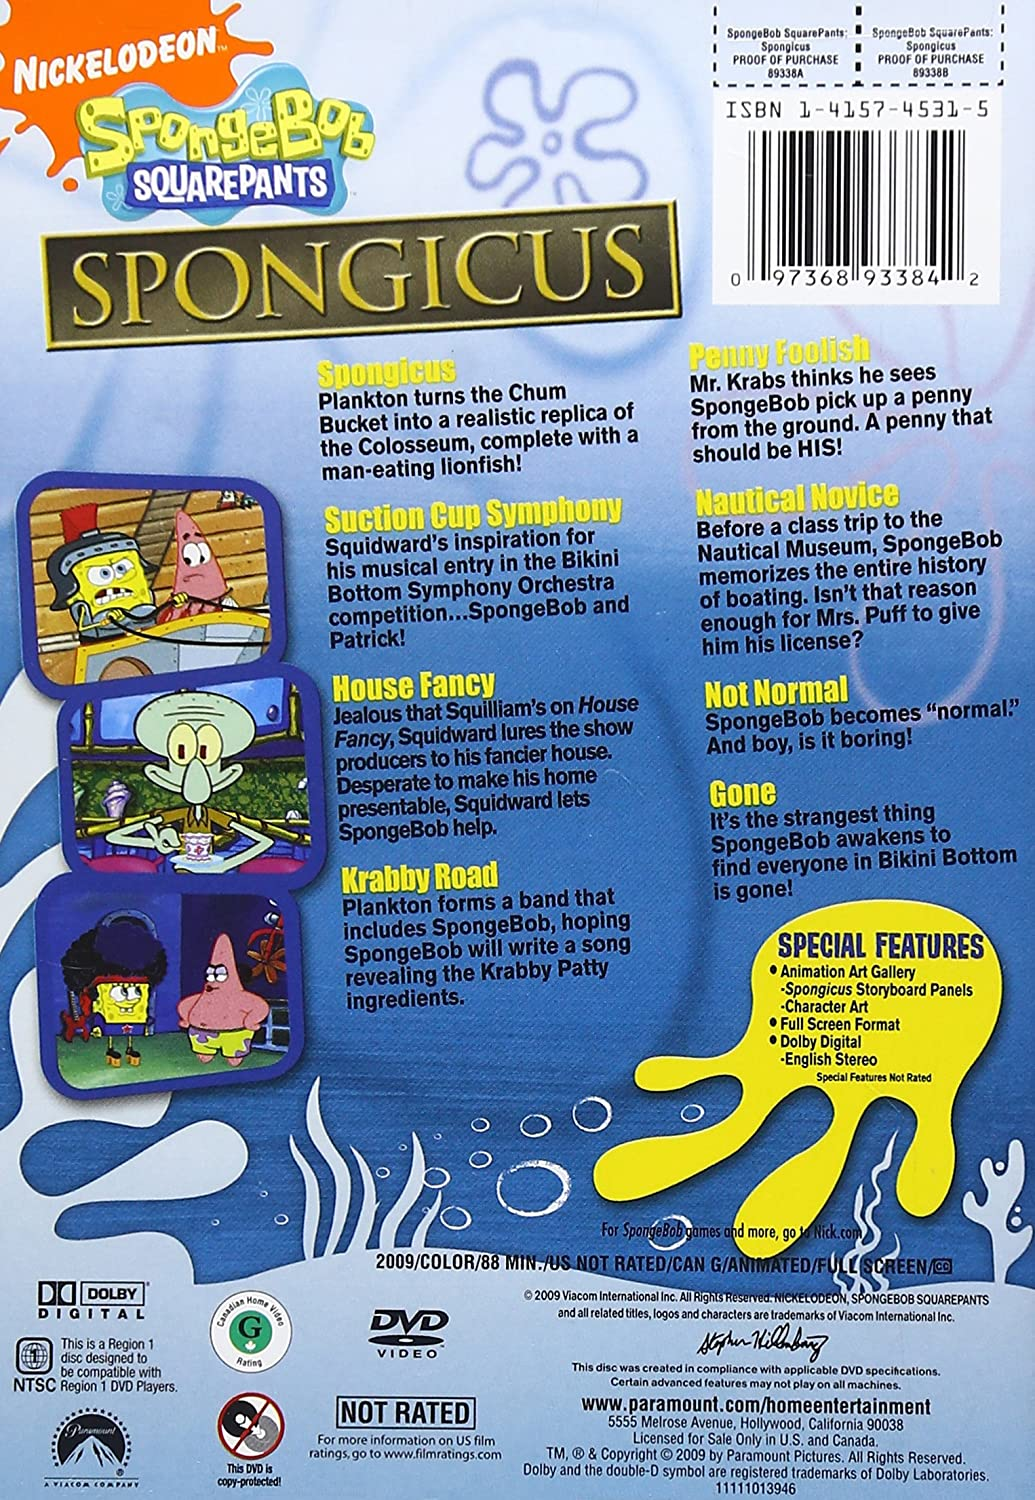 Spongicus DVD Back Cover